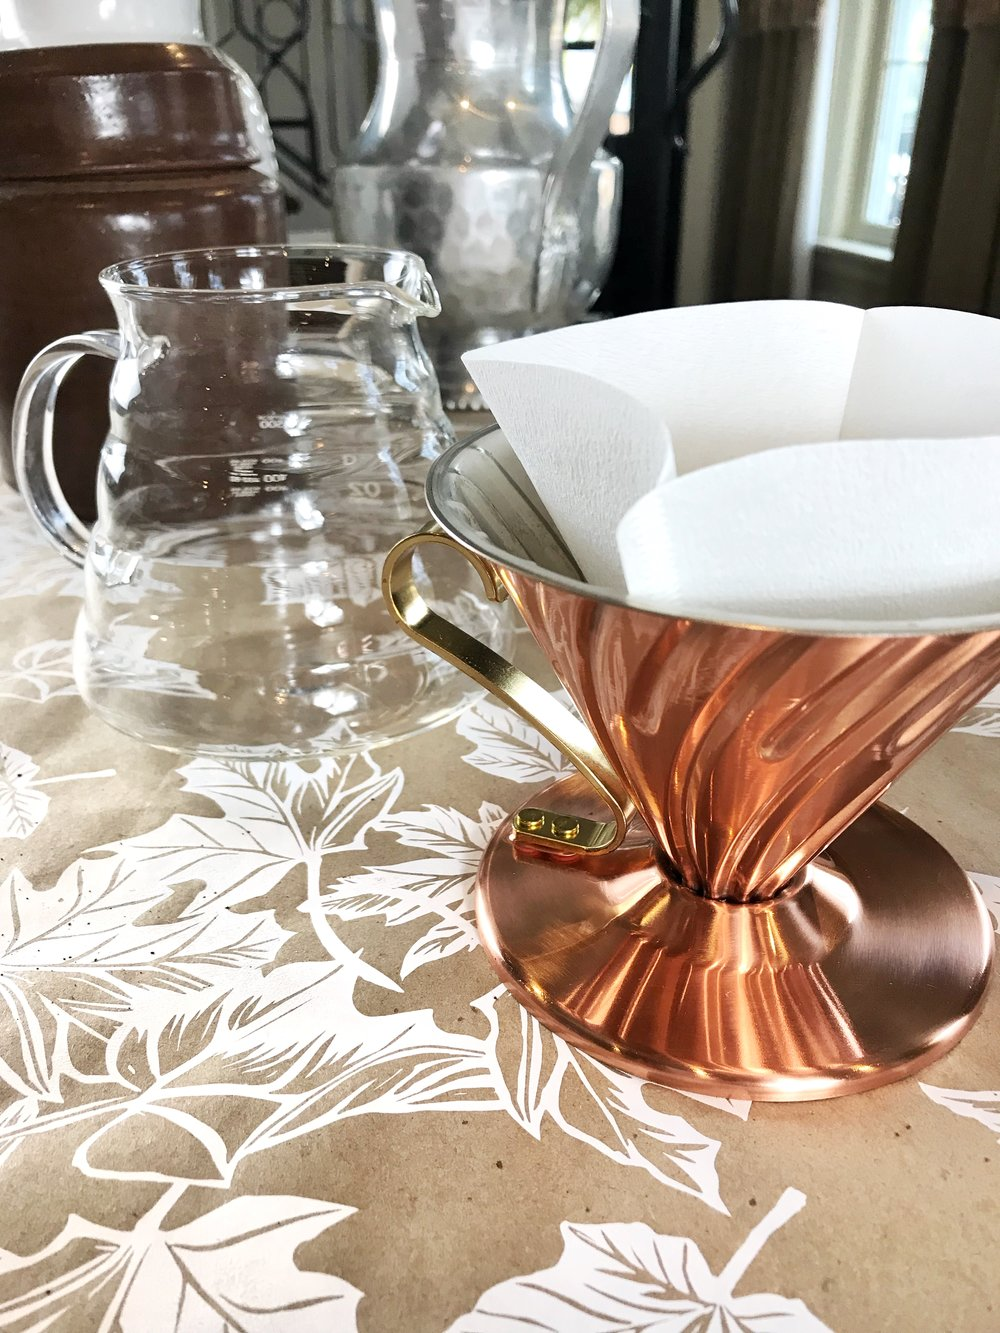 Step 2:Insert a Coffee Filter - Place the filter inside of the copper series dripper.